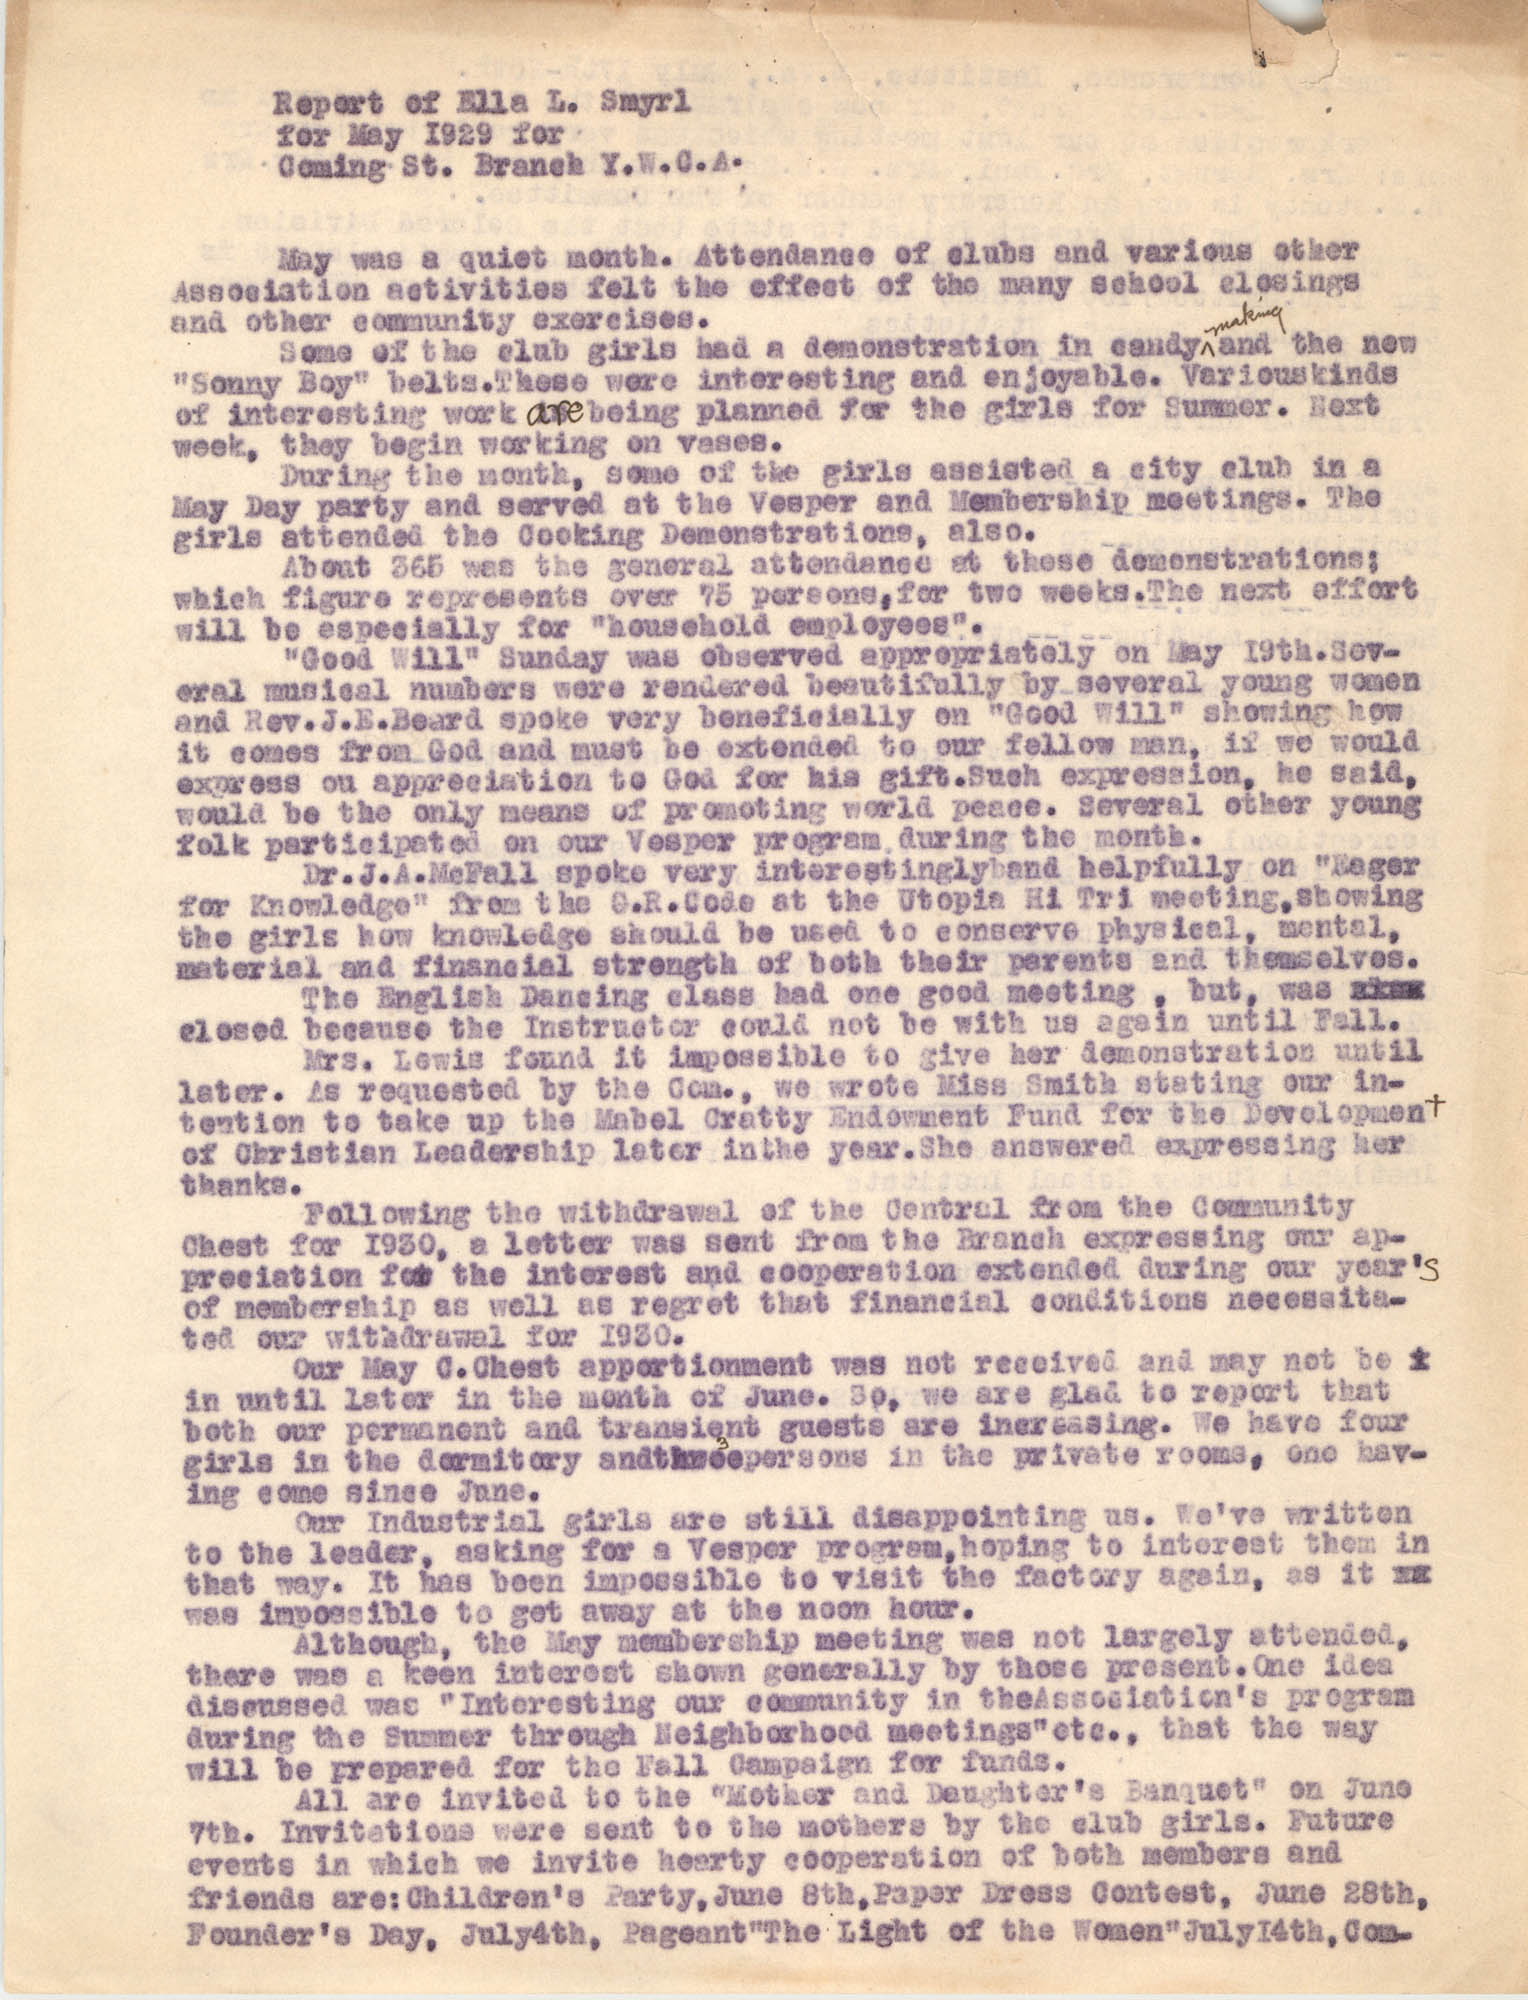 Monthly Report for the Coming Street Y.W.C.A., May 1929